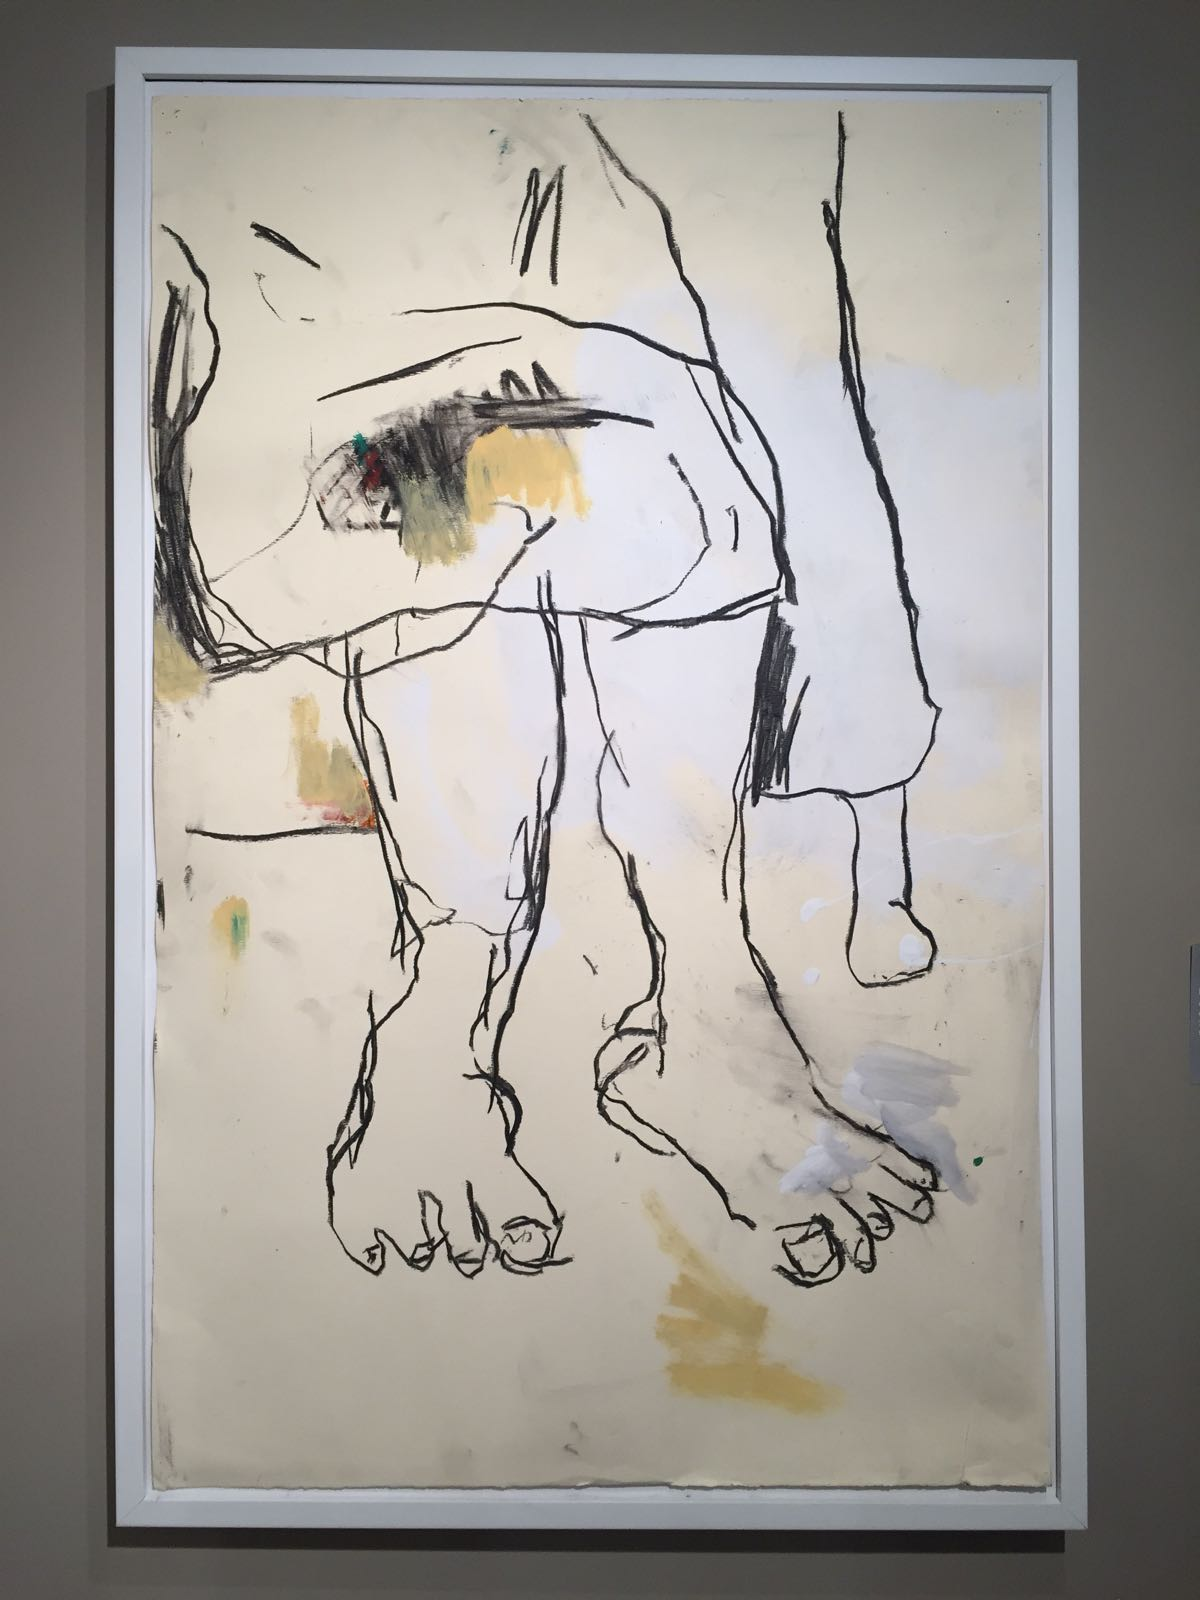 """Heino Schmid. """"Ma II"""", acrylic, charcoal and oil pastel on paper. 2018. All images courtesy of the D'Aguilar Art Foundation."""